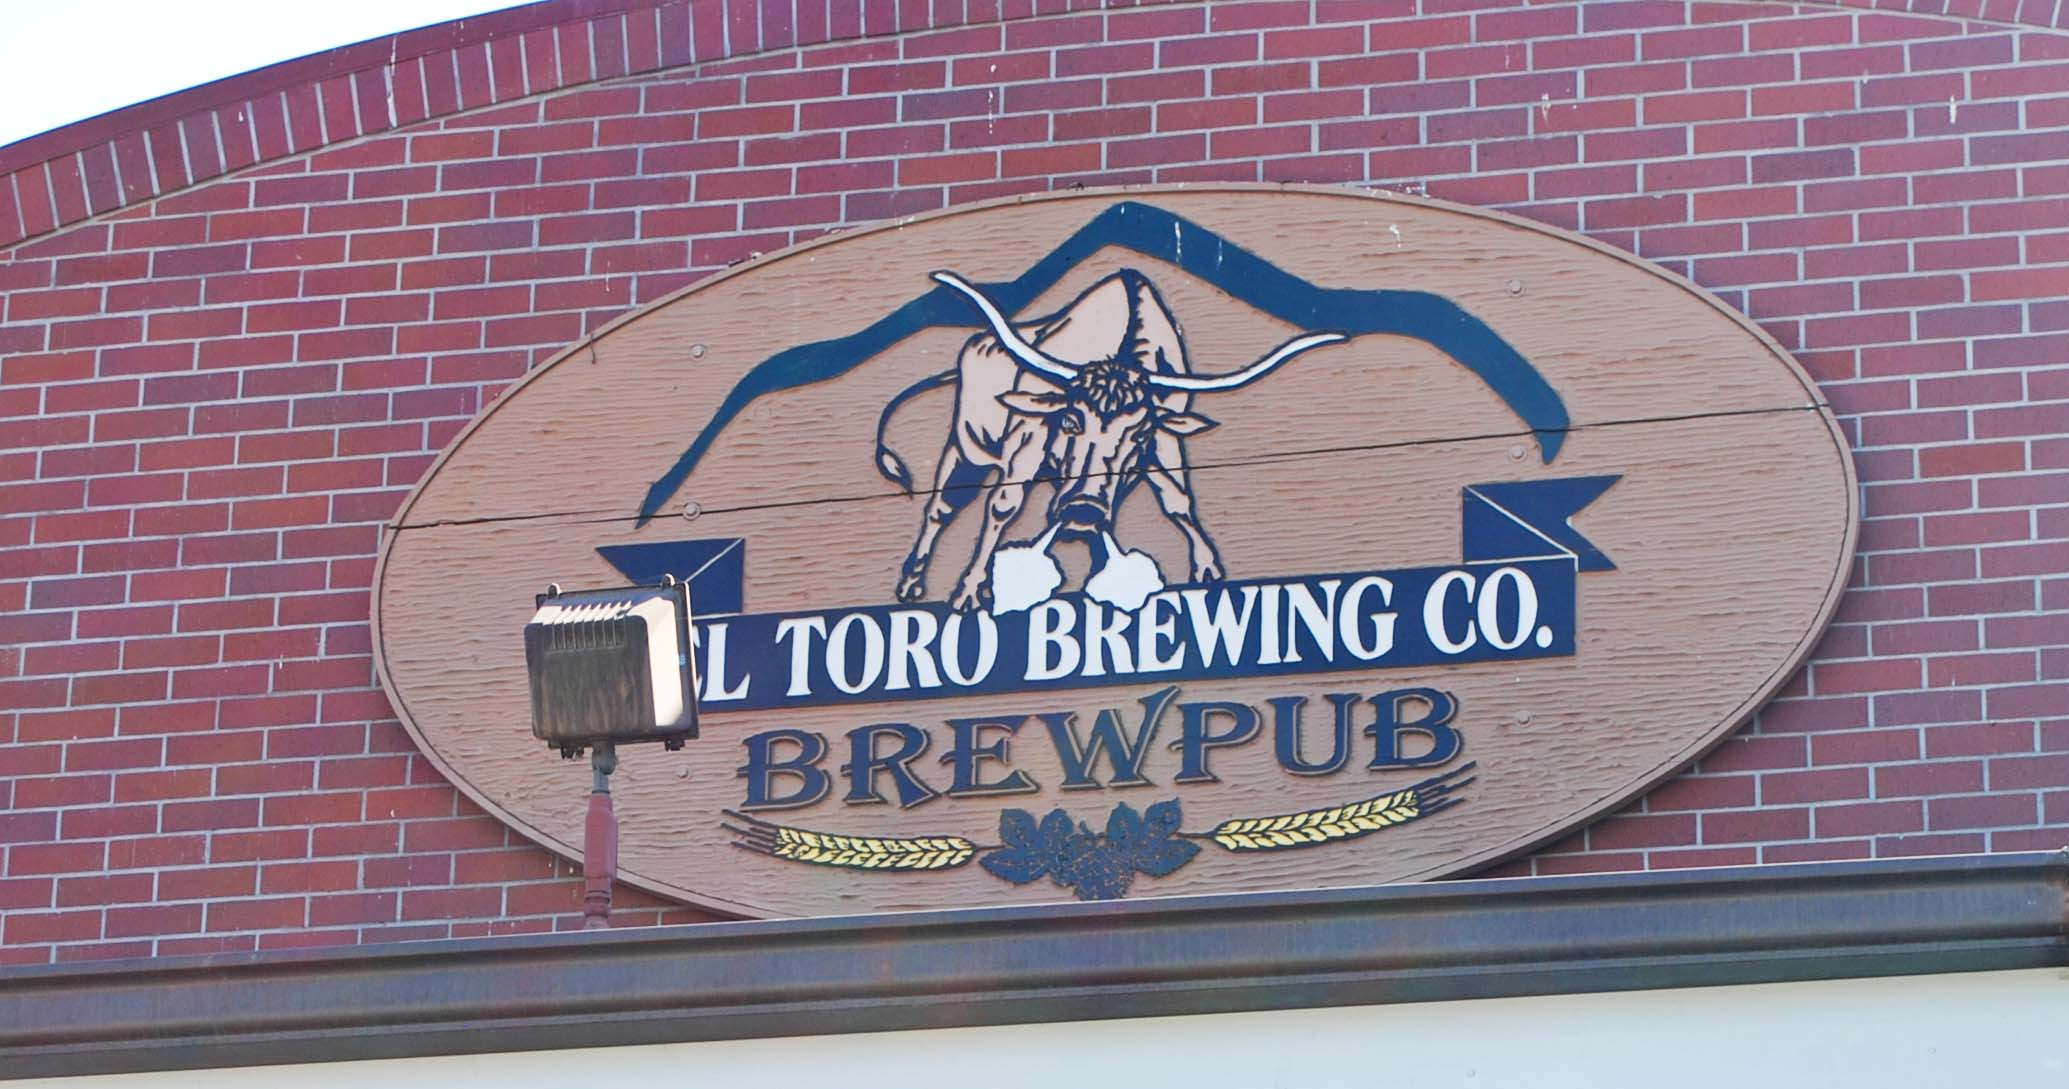 178. El Toro Brewing Company, Morgan Hill, CA 2013